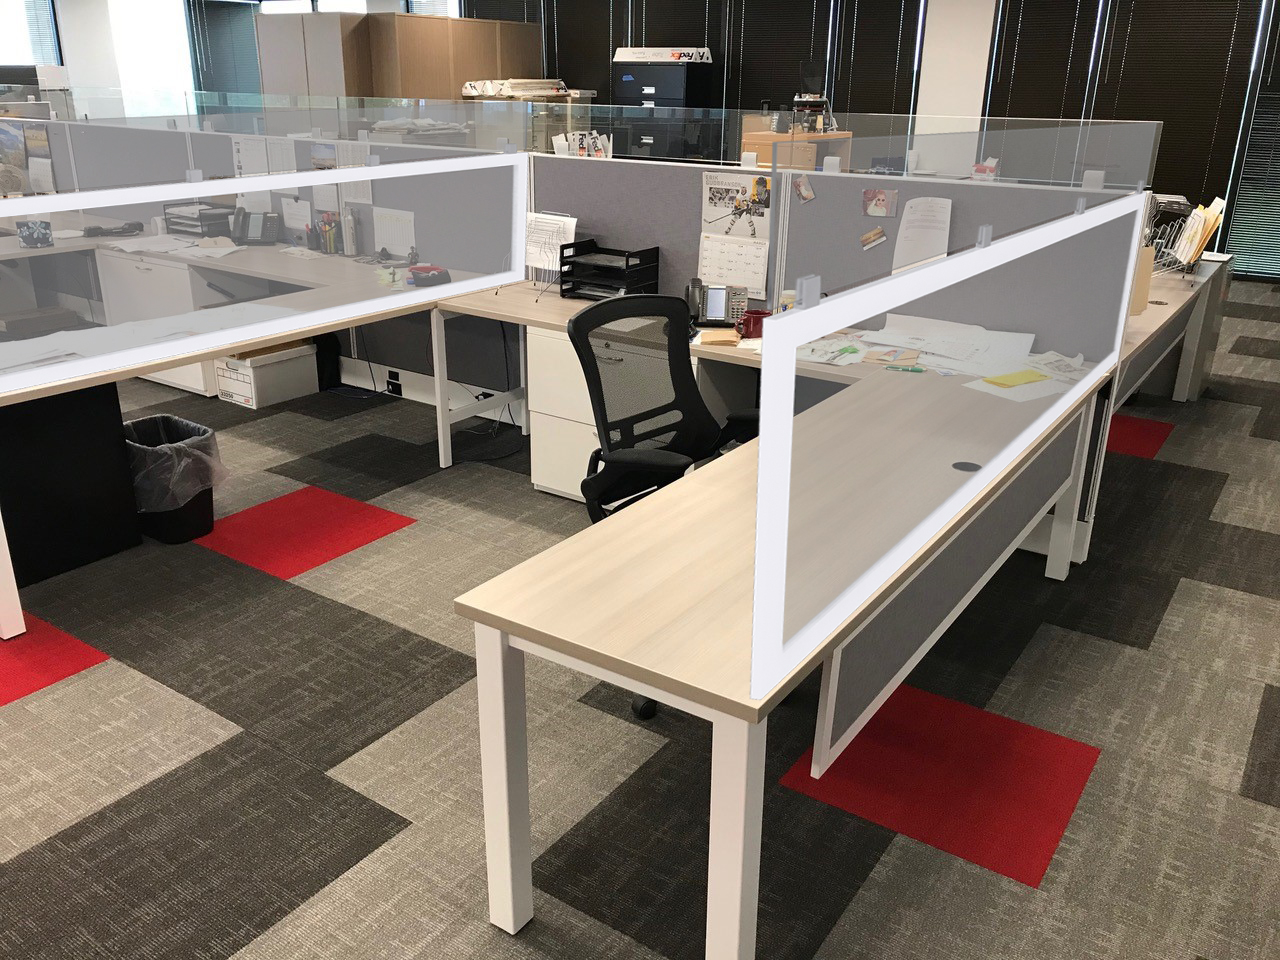 Office with plex dividers using existing desks and cubicles.